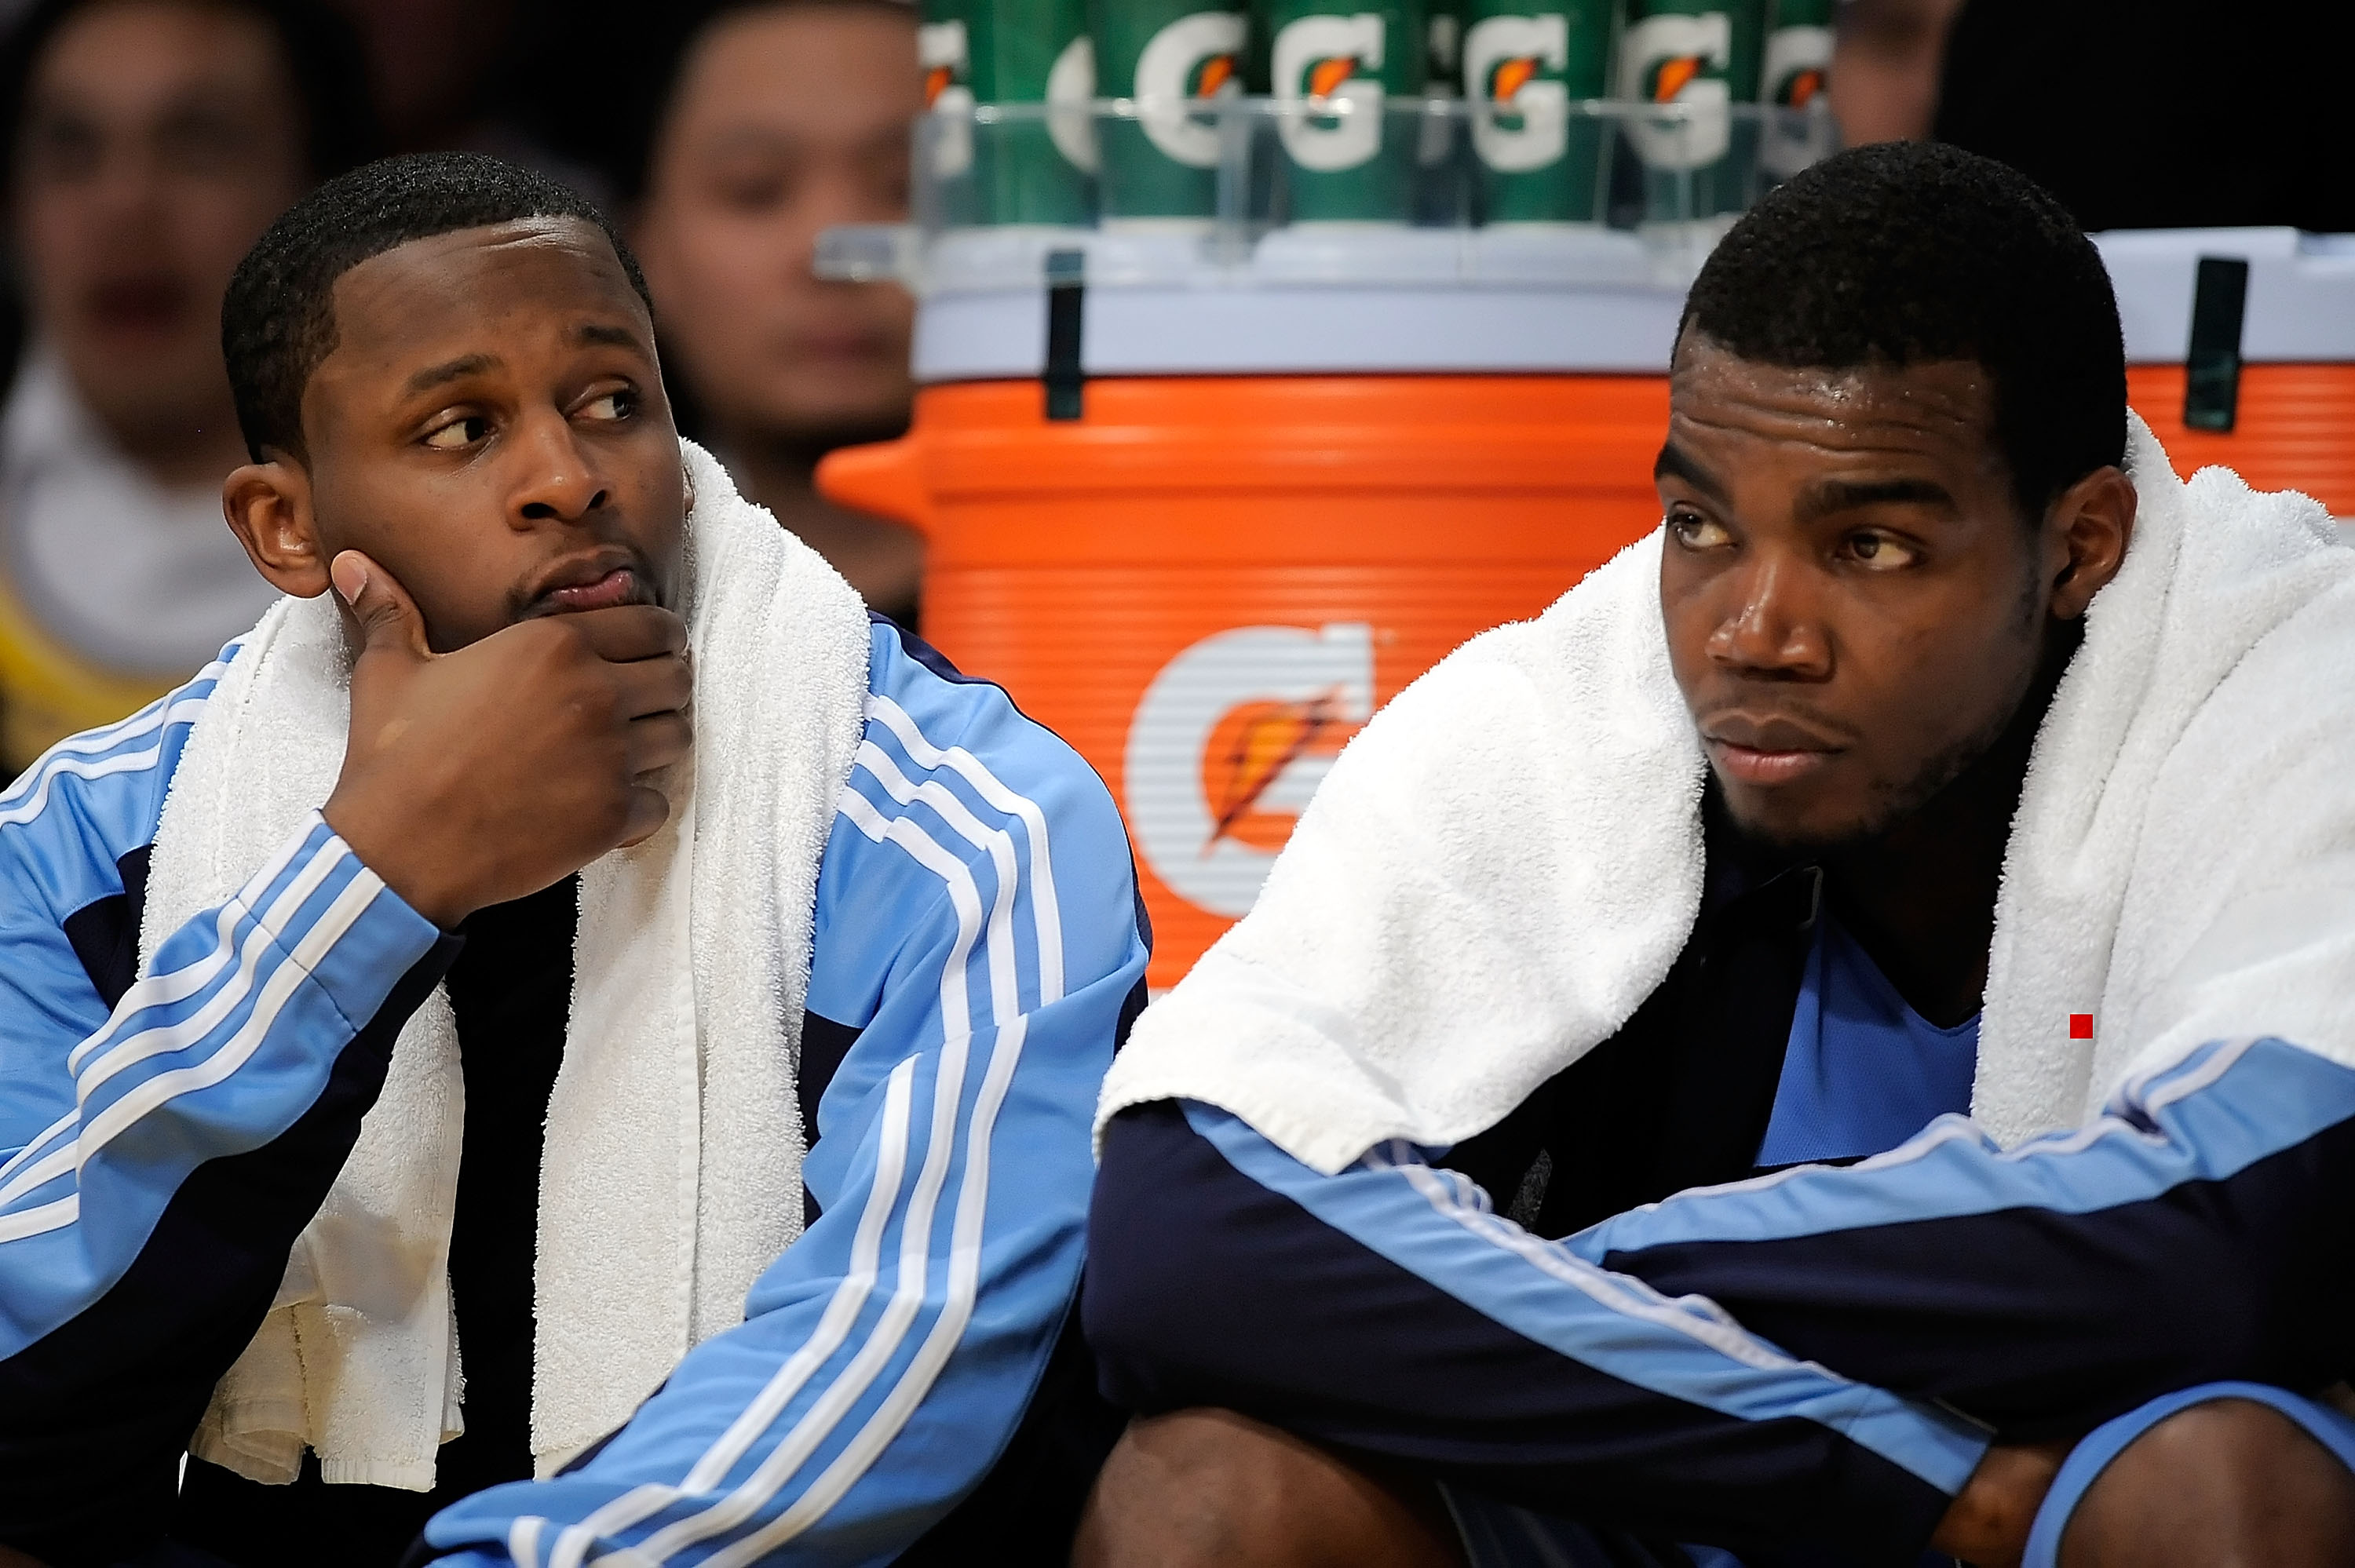 LOS ANGELES, CA - APRIL 27:  (L-R) C.J. Miles #34 and Paul Millsap #24 of the Utah Jazz sit on the bench in the second quarter against the Los Angeles Lakers in Game Five of the Western Conference Quarterfinals during the 2009 NBA Playoffs at Staples Cent